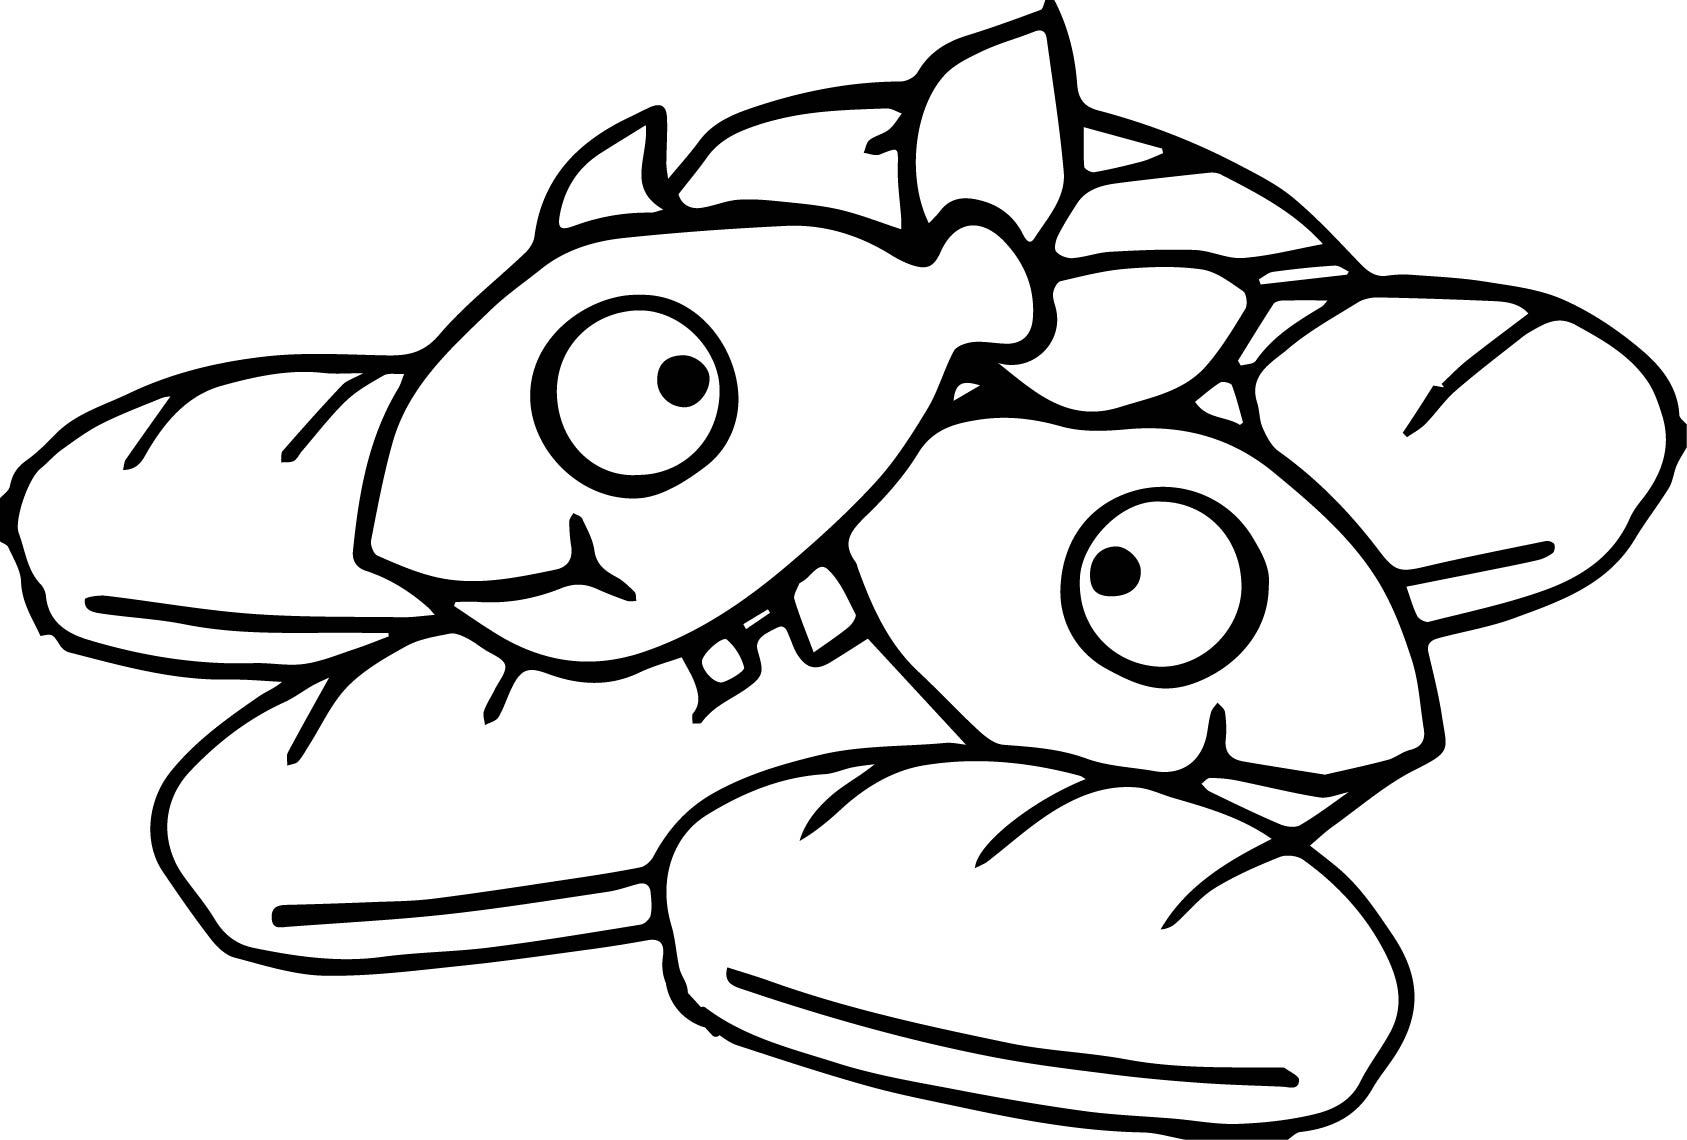 5 loaves and 2 fish flash coloring page wecoloringpage